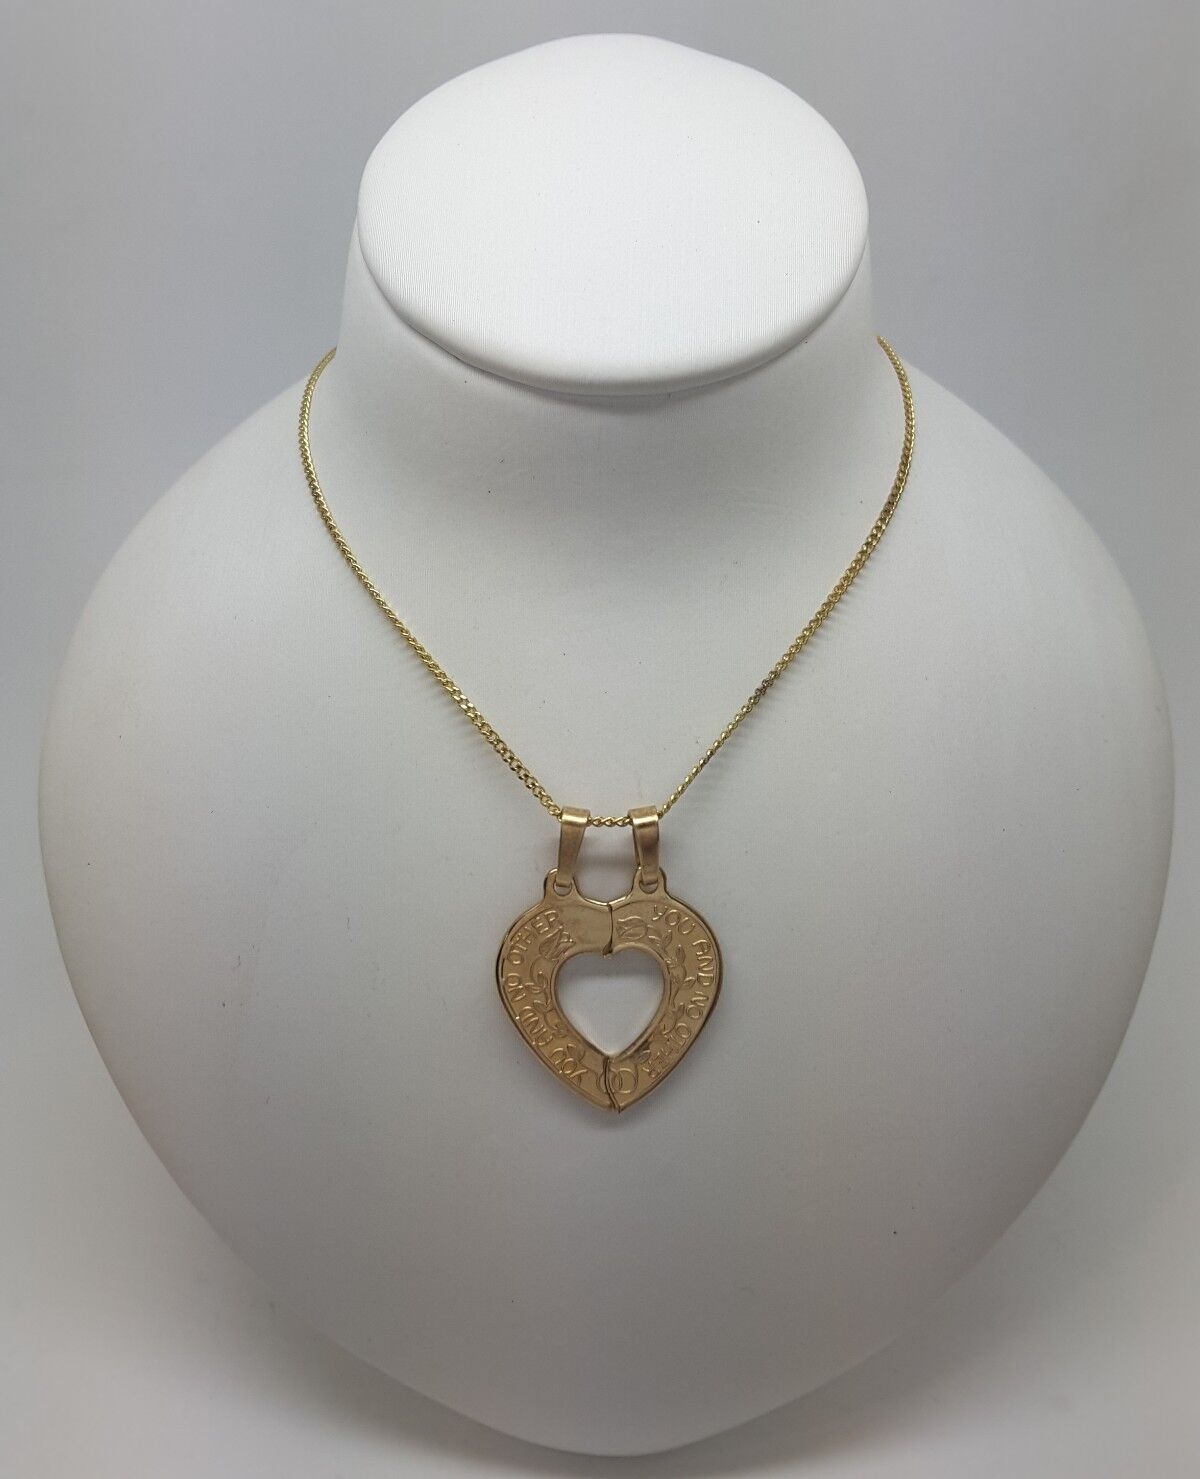 Miran 080095 9K gold You And No Other Cut Out Heart Break Pendant RRP  186